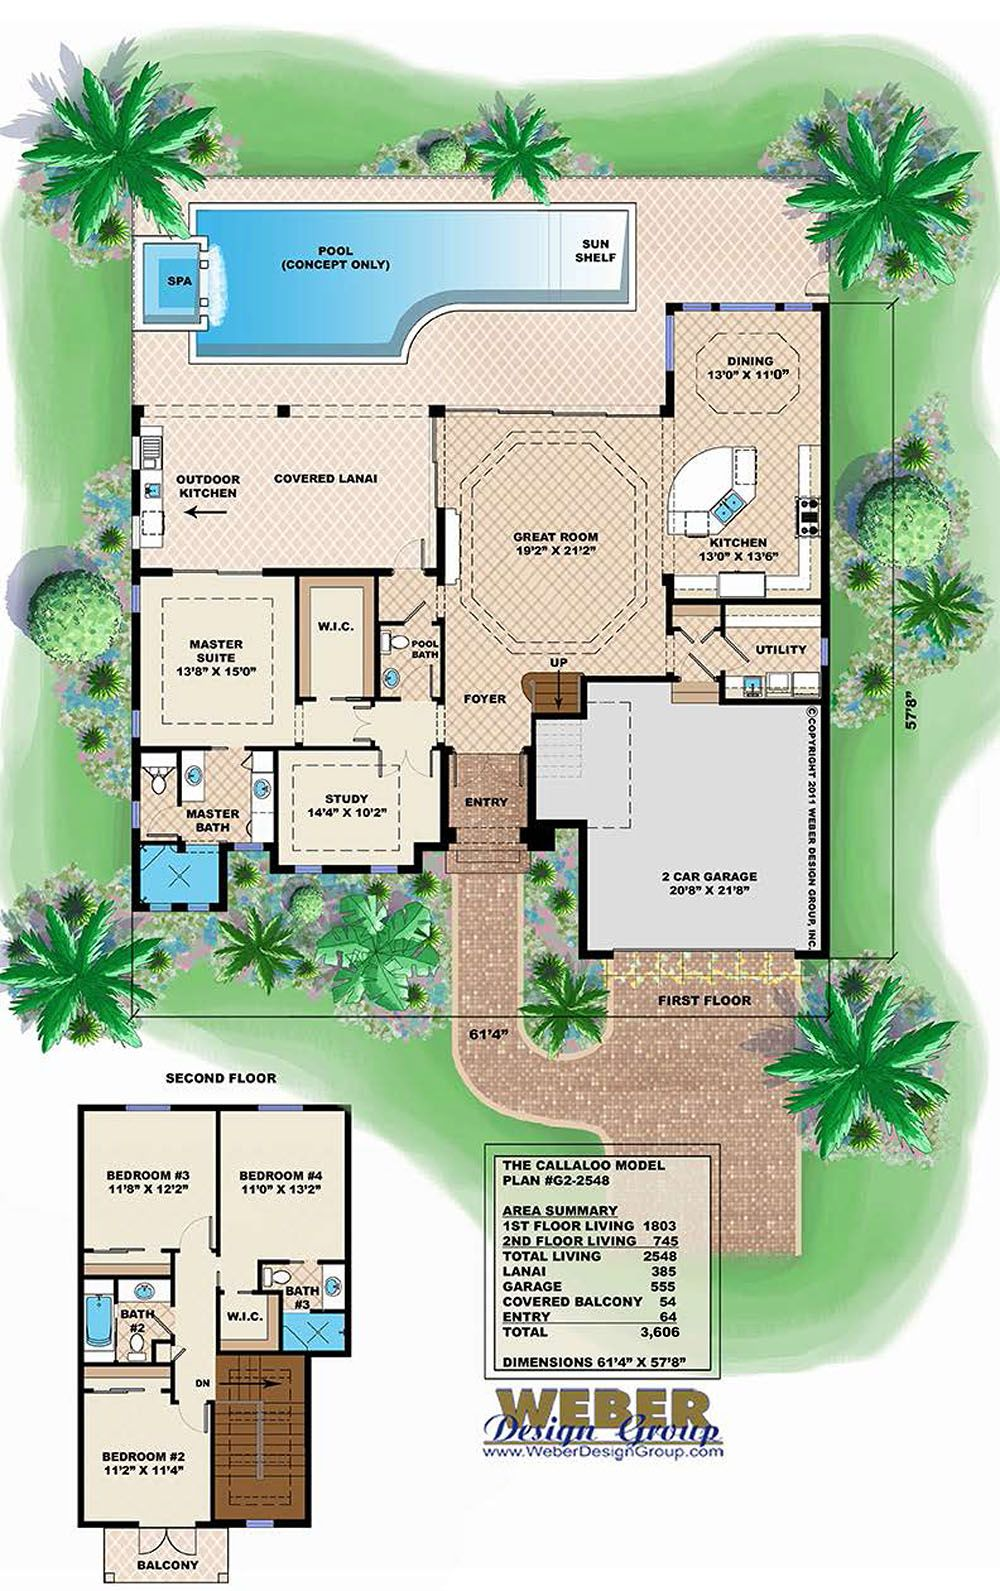 key west style house plans typically feature raised foundations shady porches and numerous windows